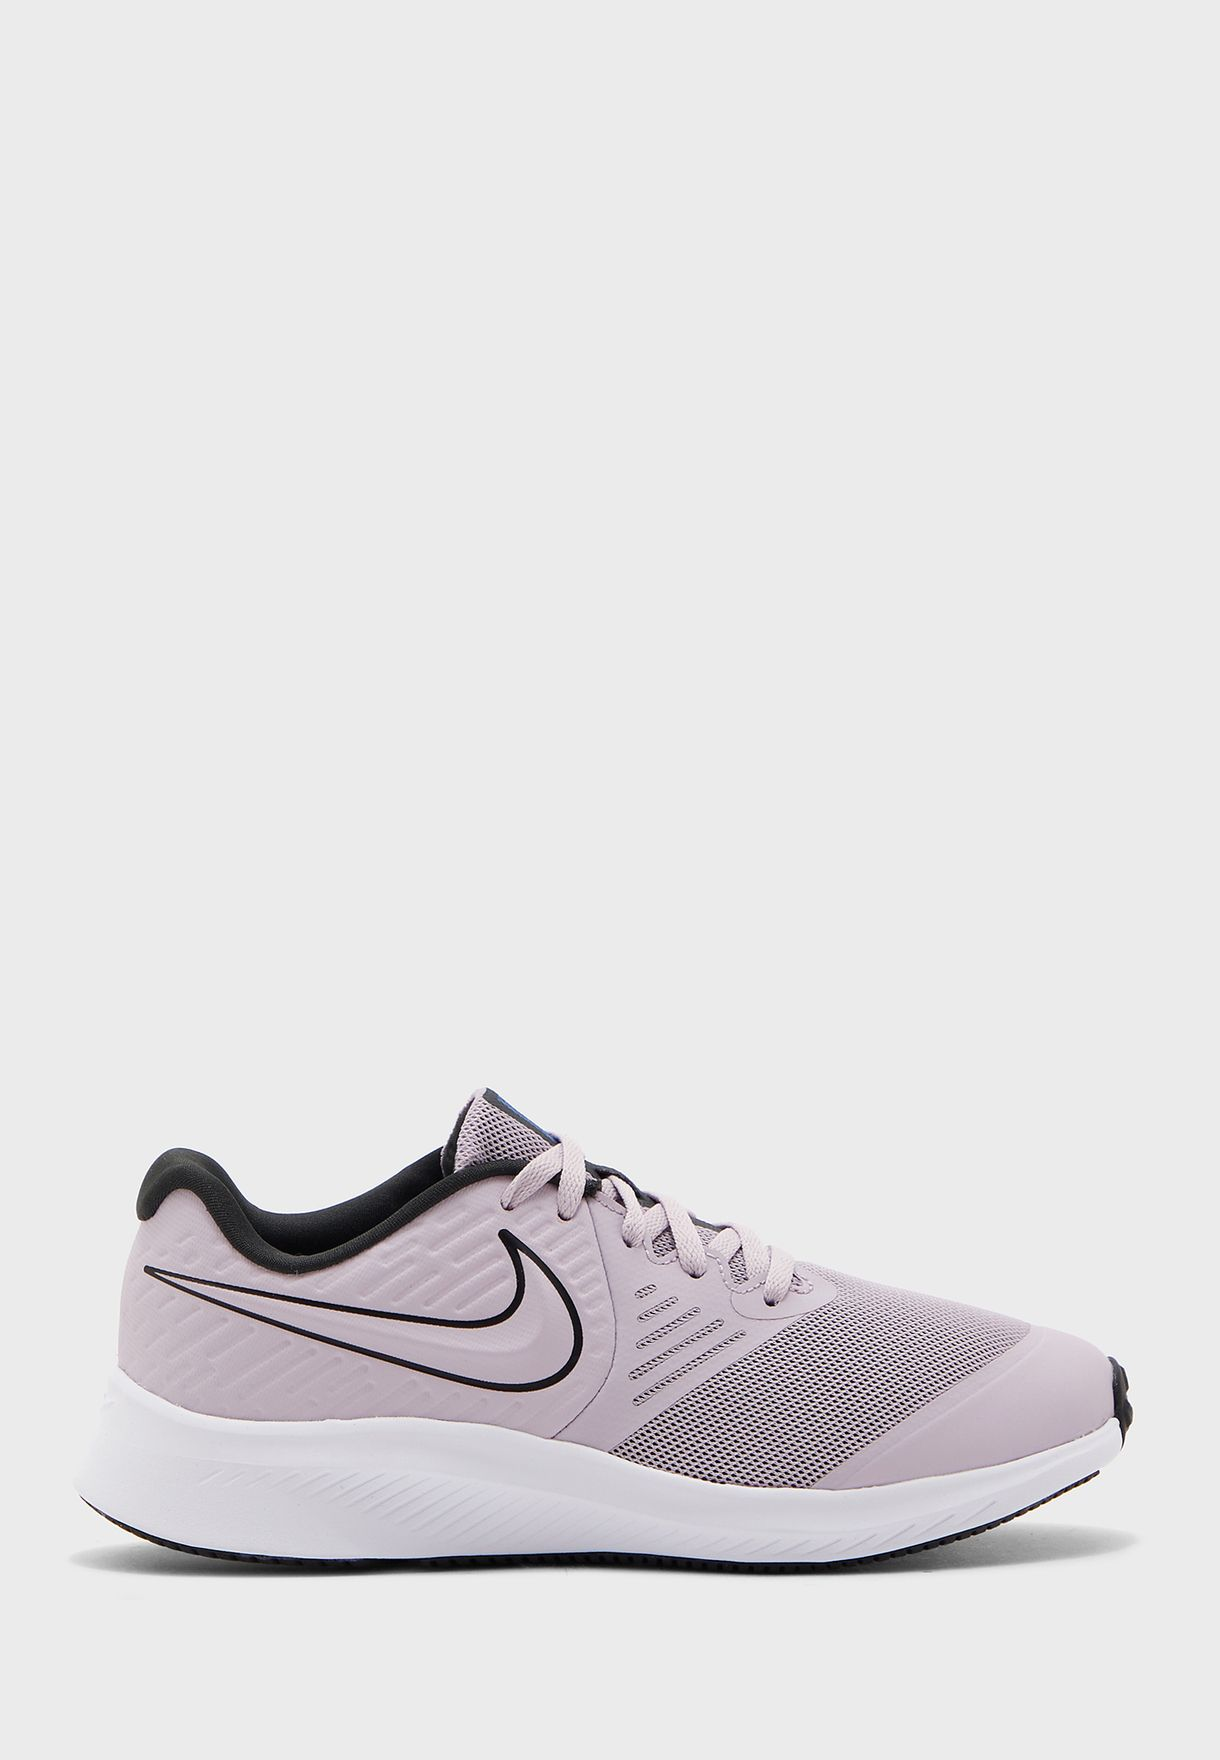 ornamento discordia detrás  Buy Nike purple Youth Star Runner 2 for Kids in MENA, Worldwide | AQ3542-501